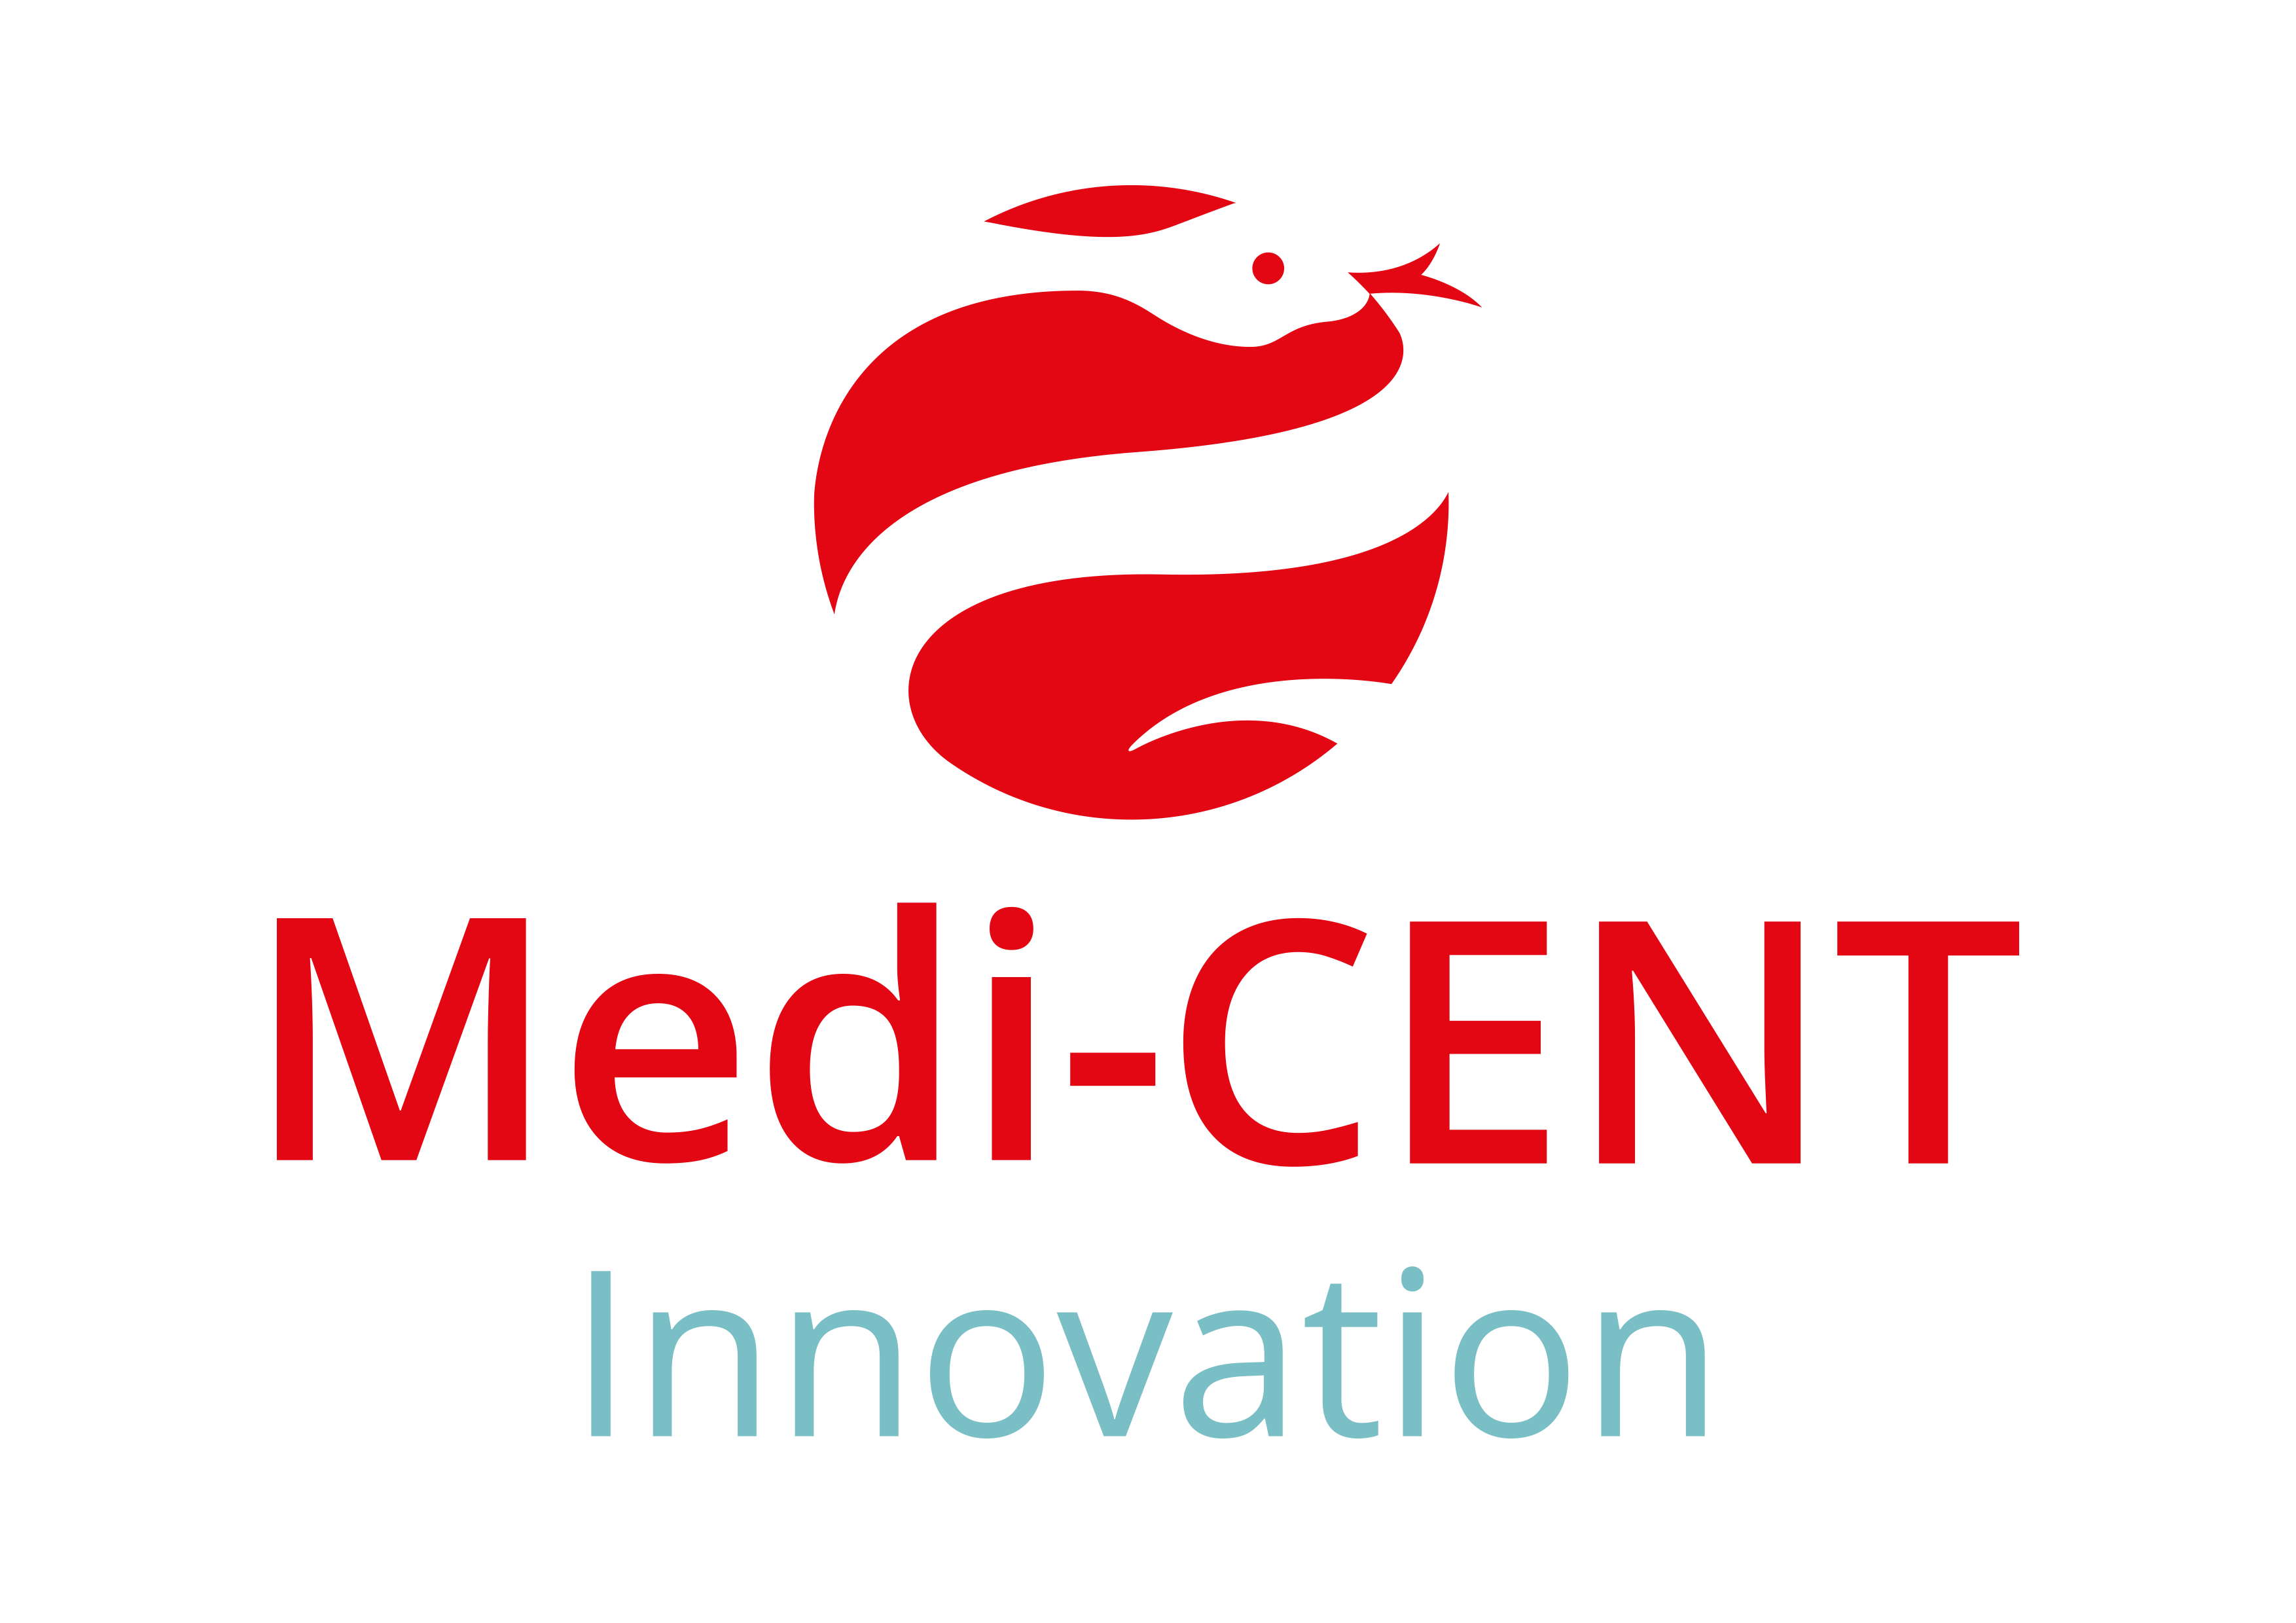 Medi-CENT Innovation